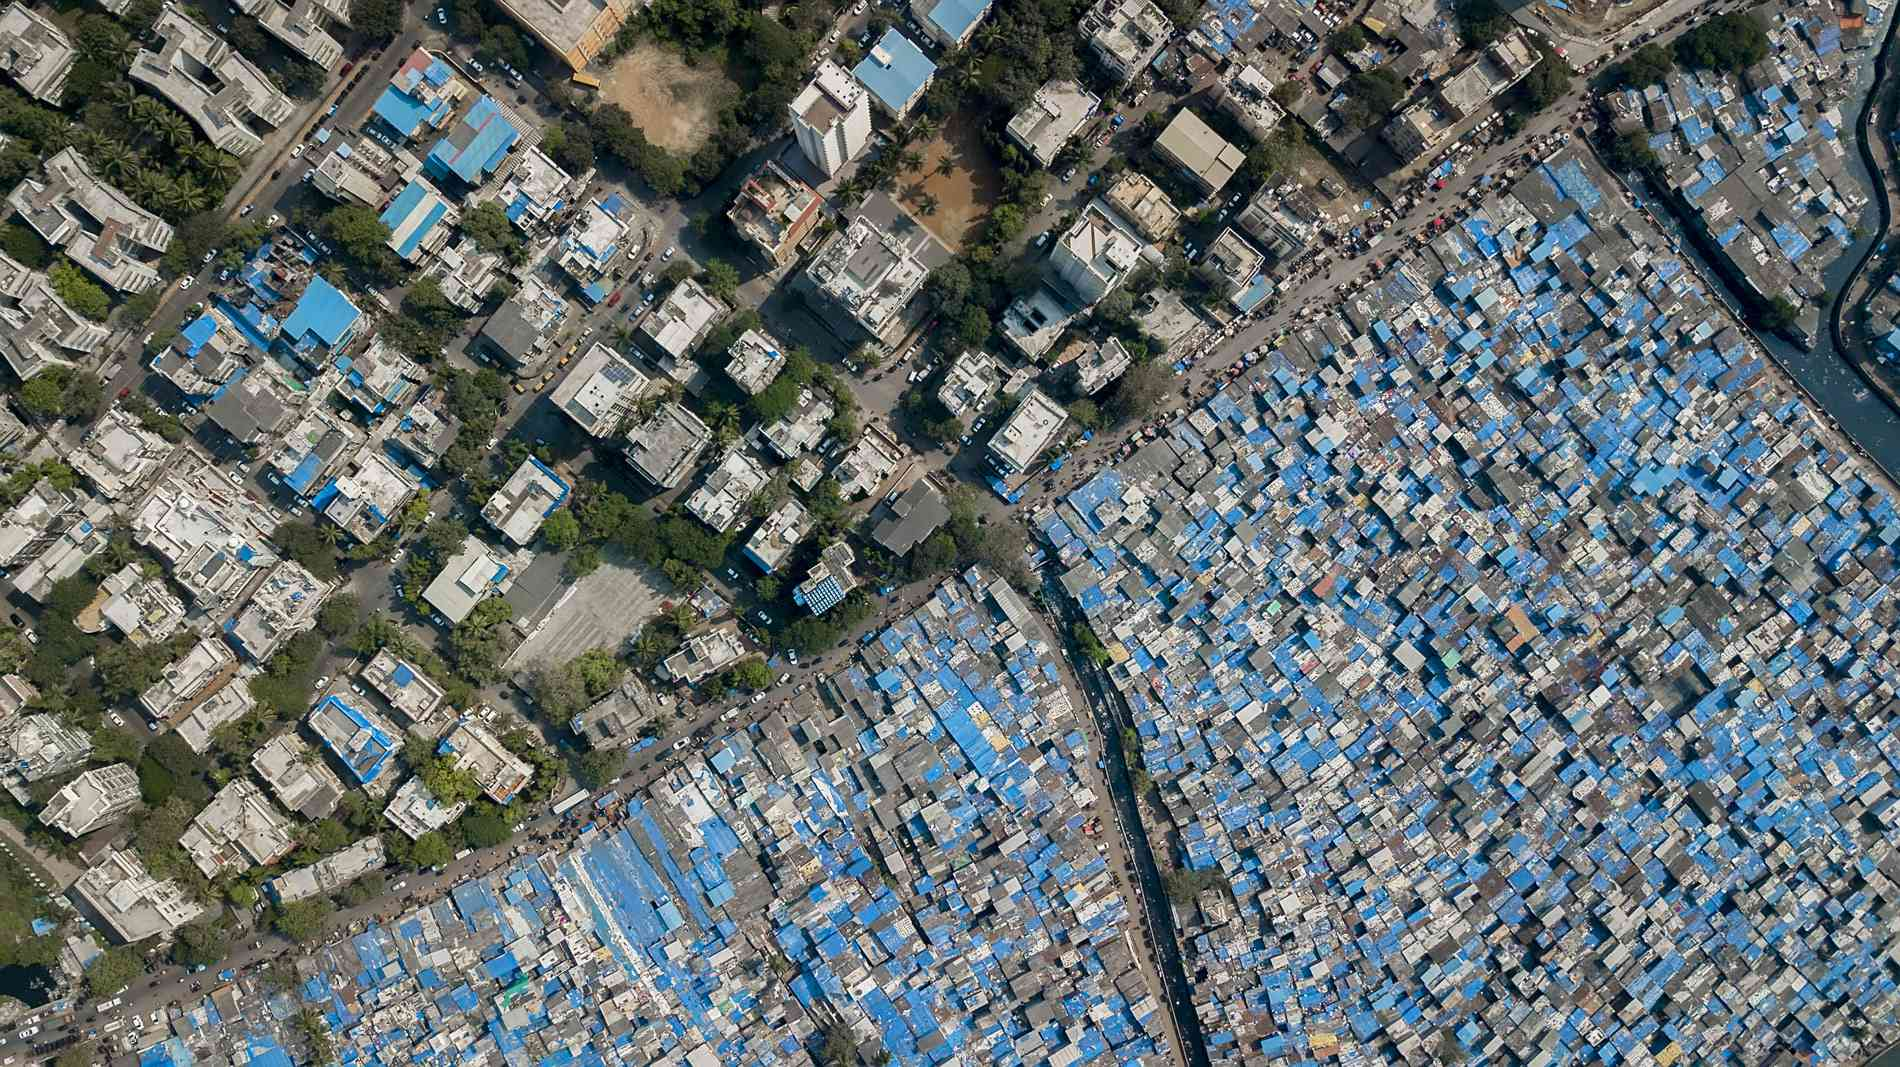 The contrast between Dharavi's tarpaulin covered shanties and the permanent structures beyond.